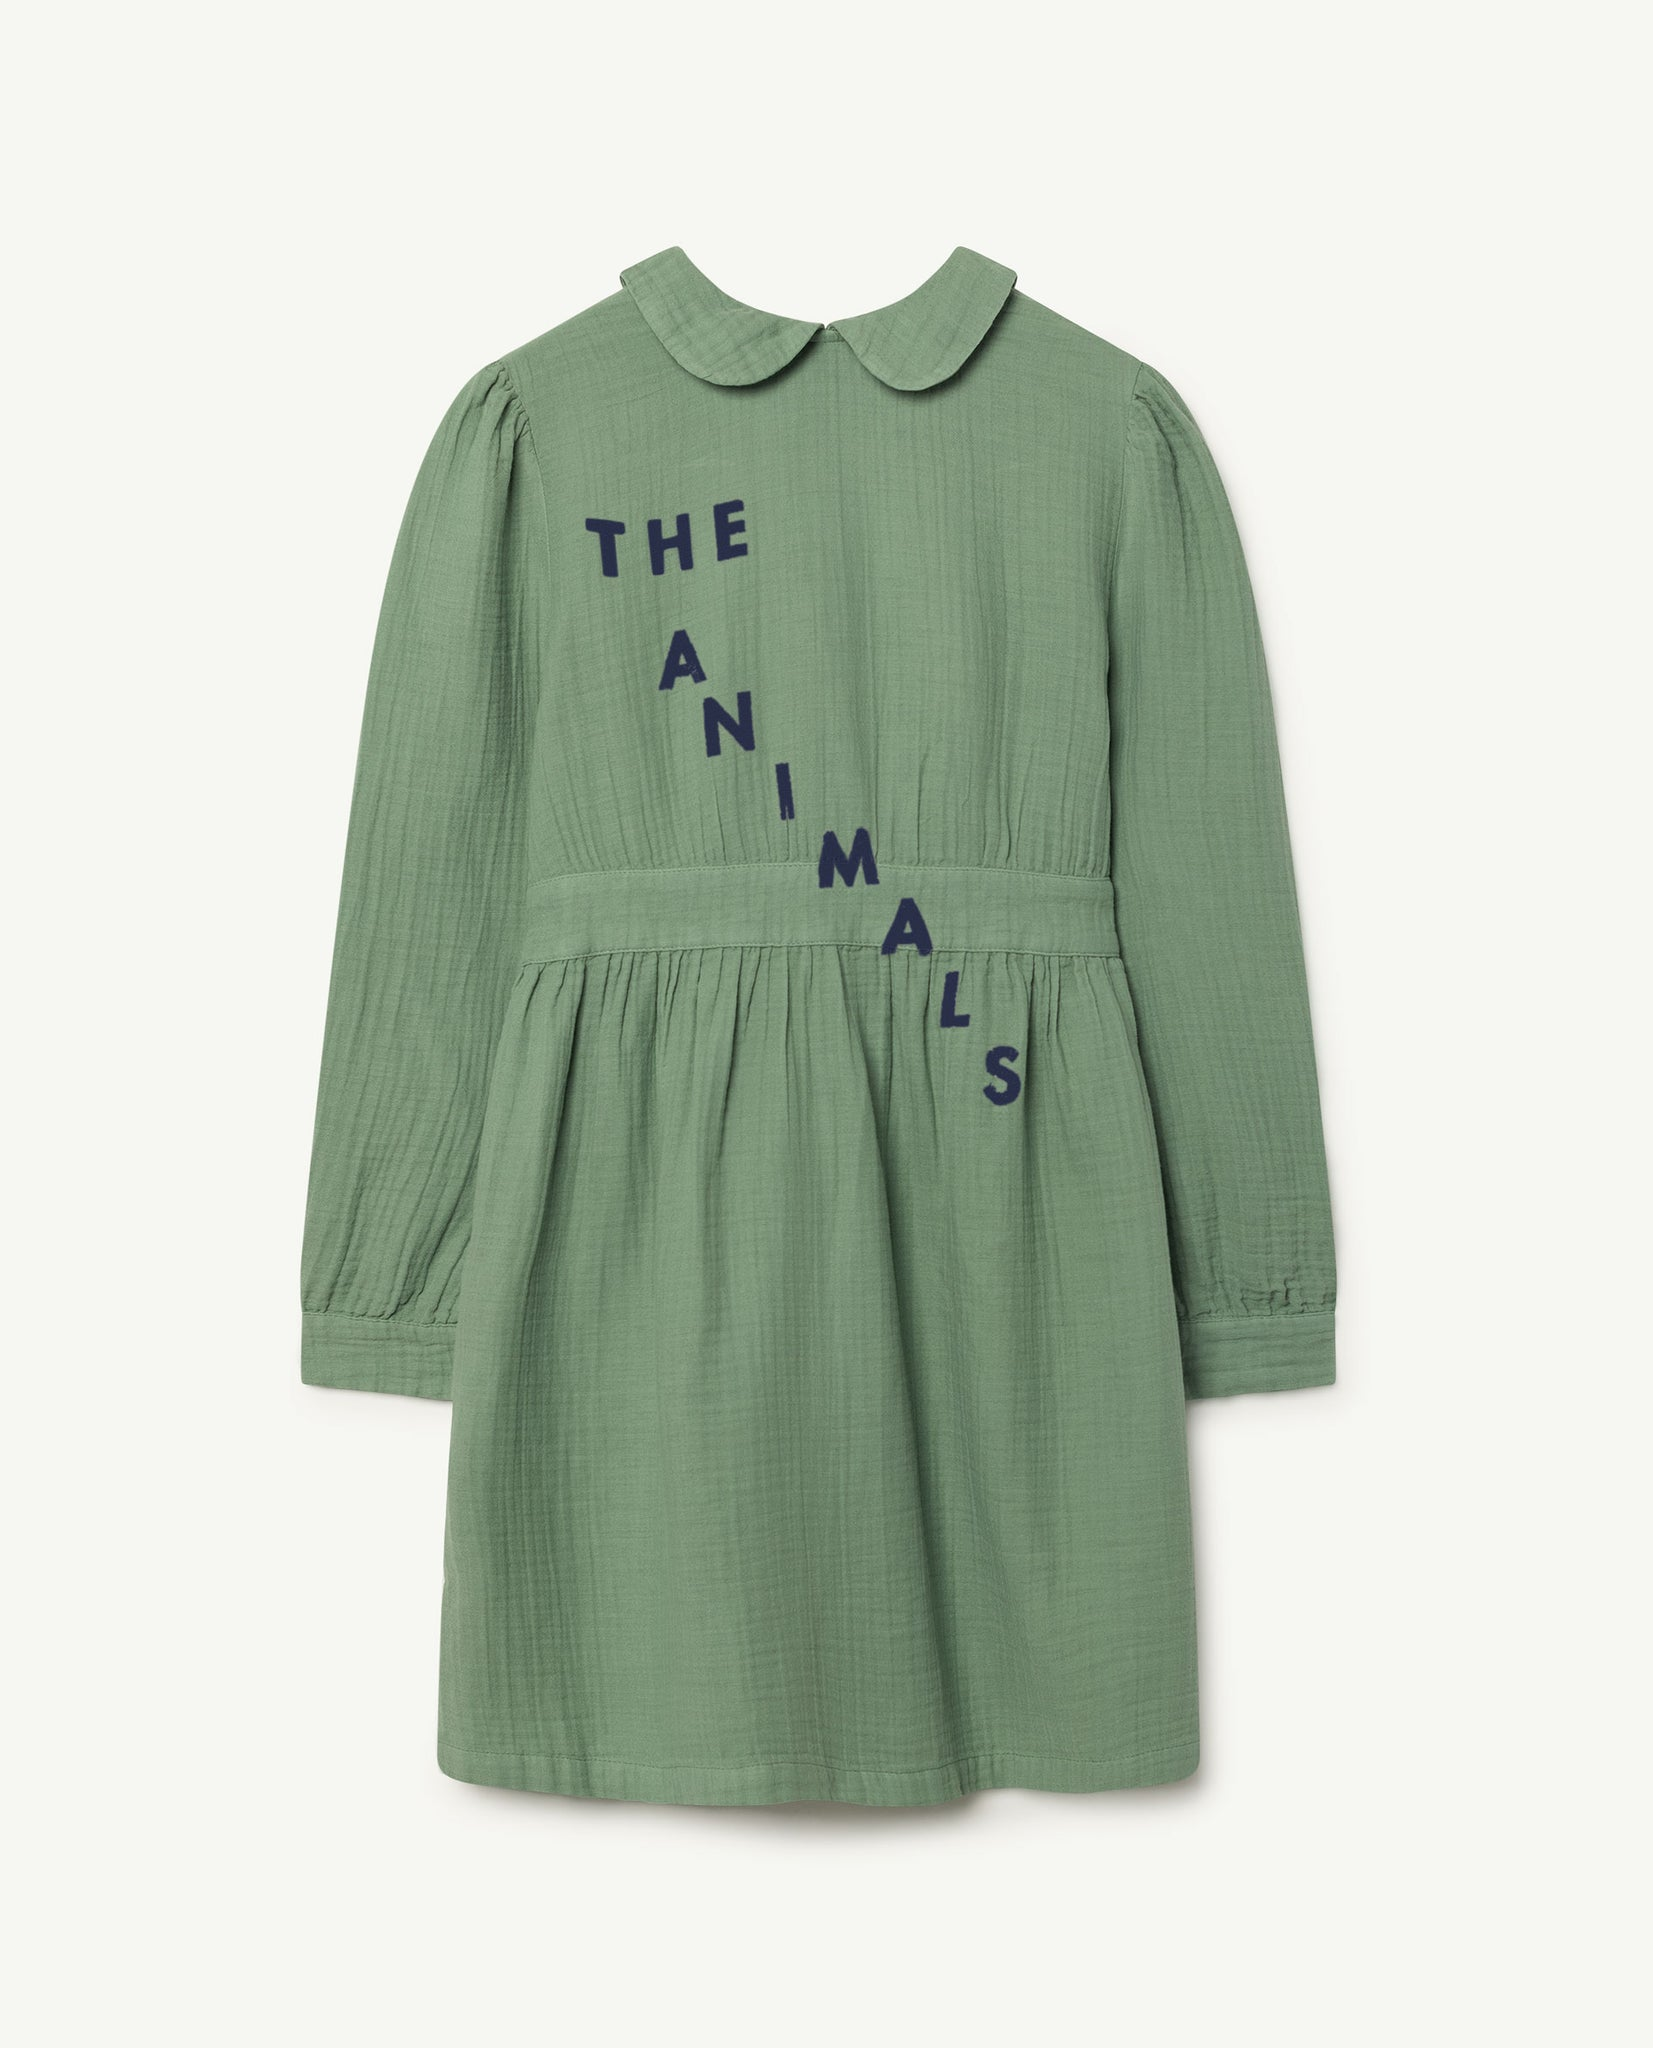 Canary kids dress - green white